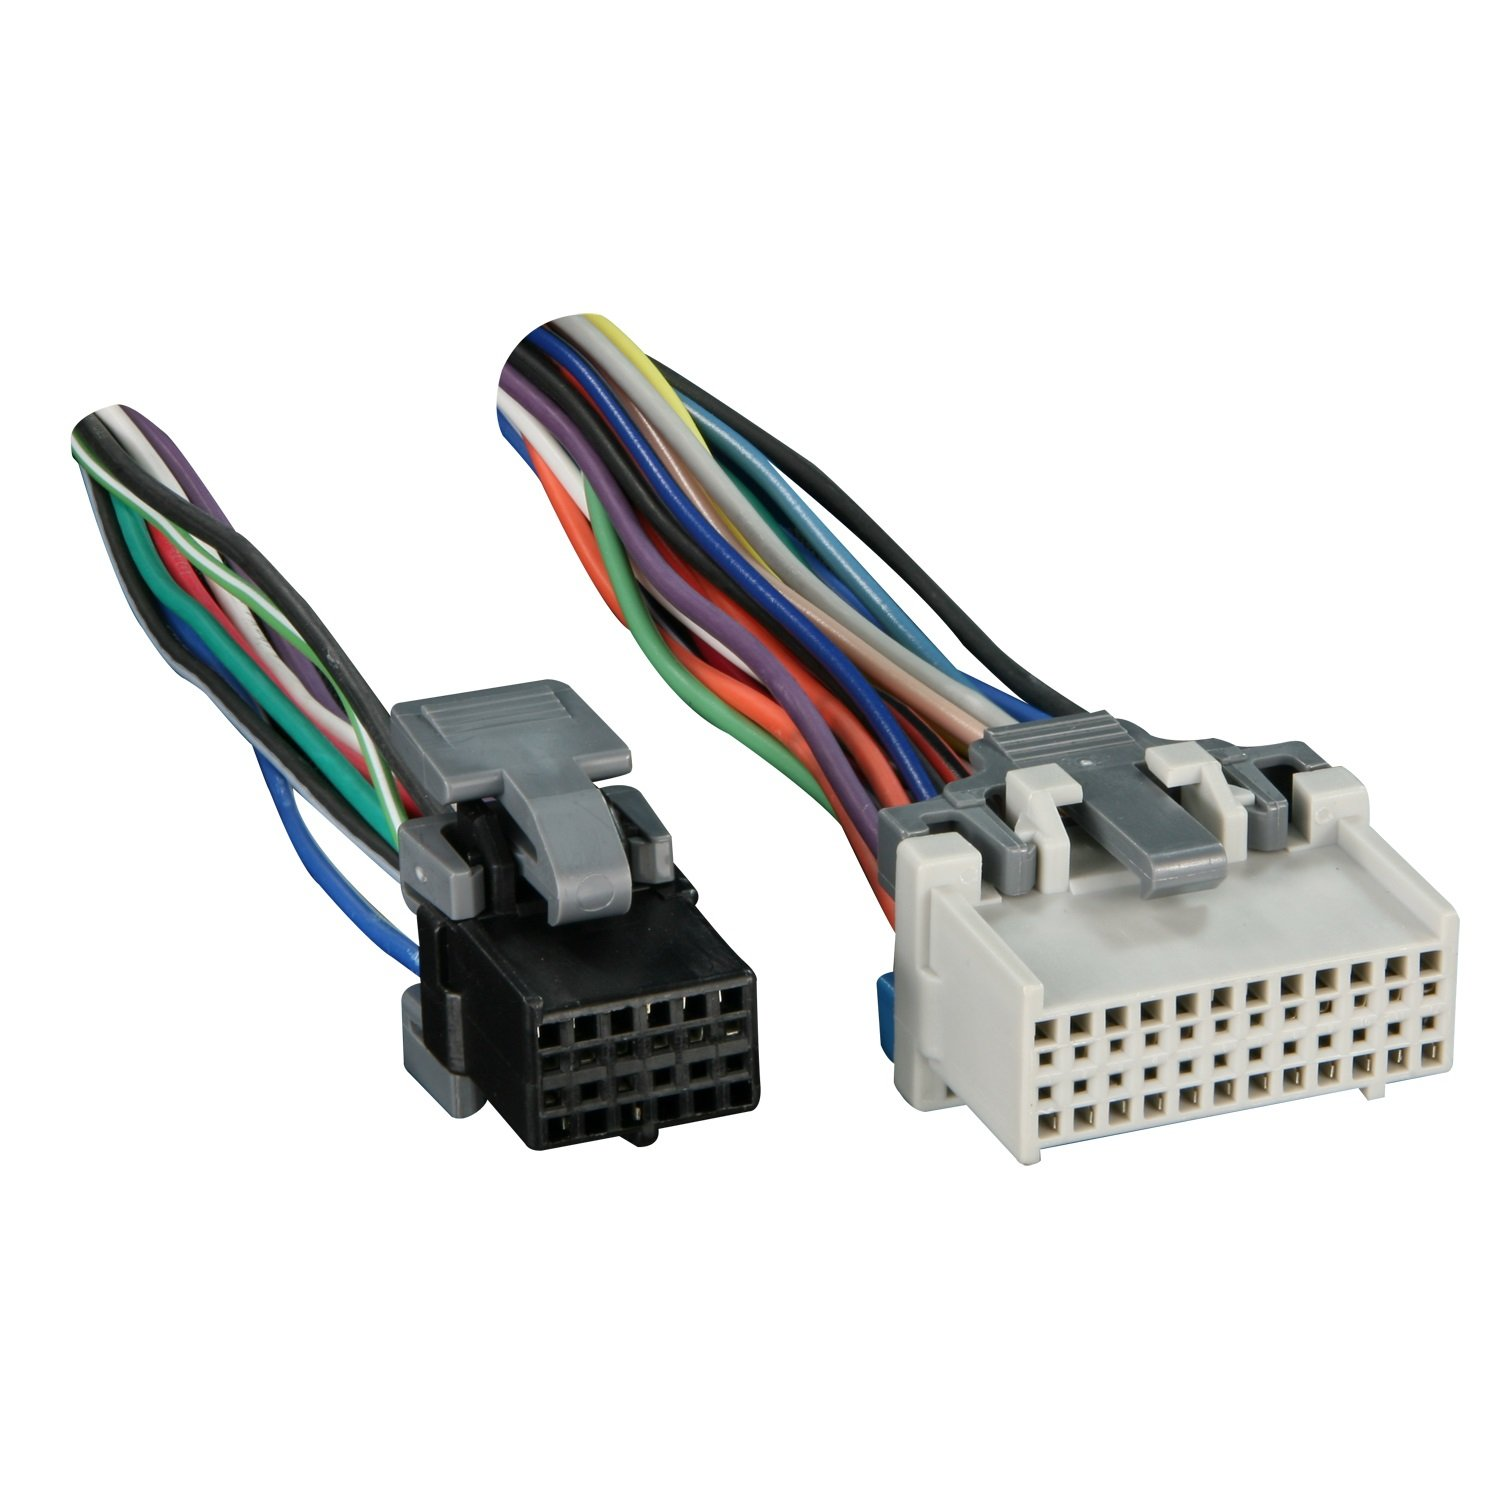 711log4bdML._SL1500_ amazon com metra turbowires 71 2003 1 wiring harness car electronics how to get wire out harness at gsmportal.co